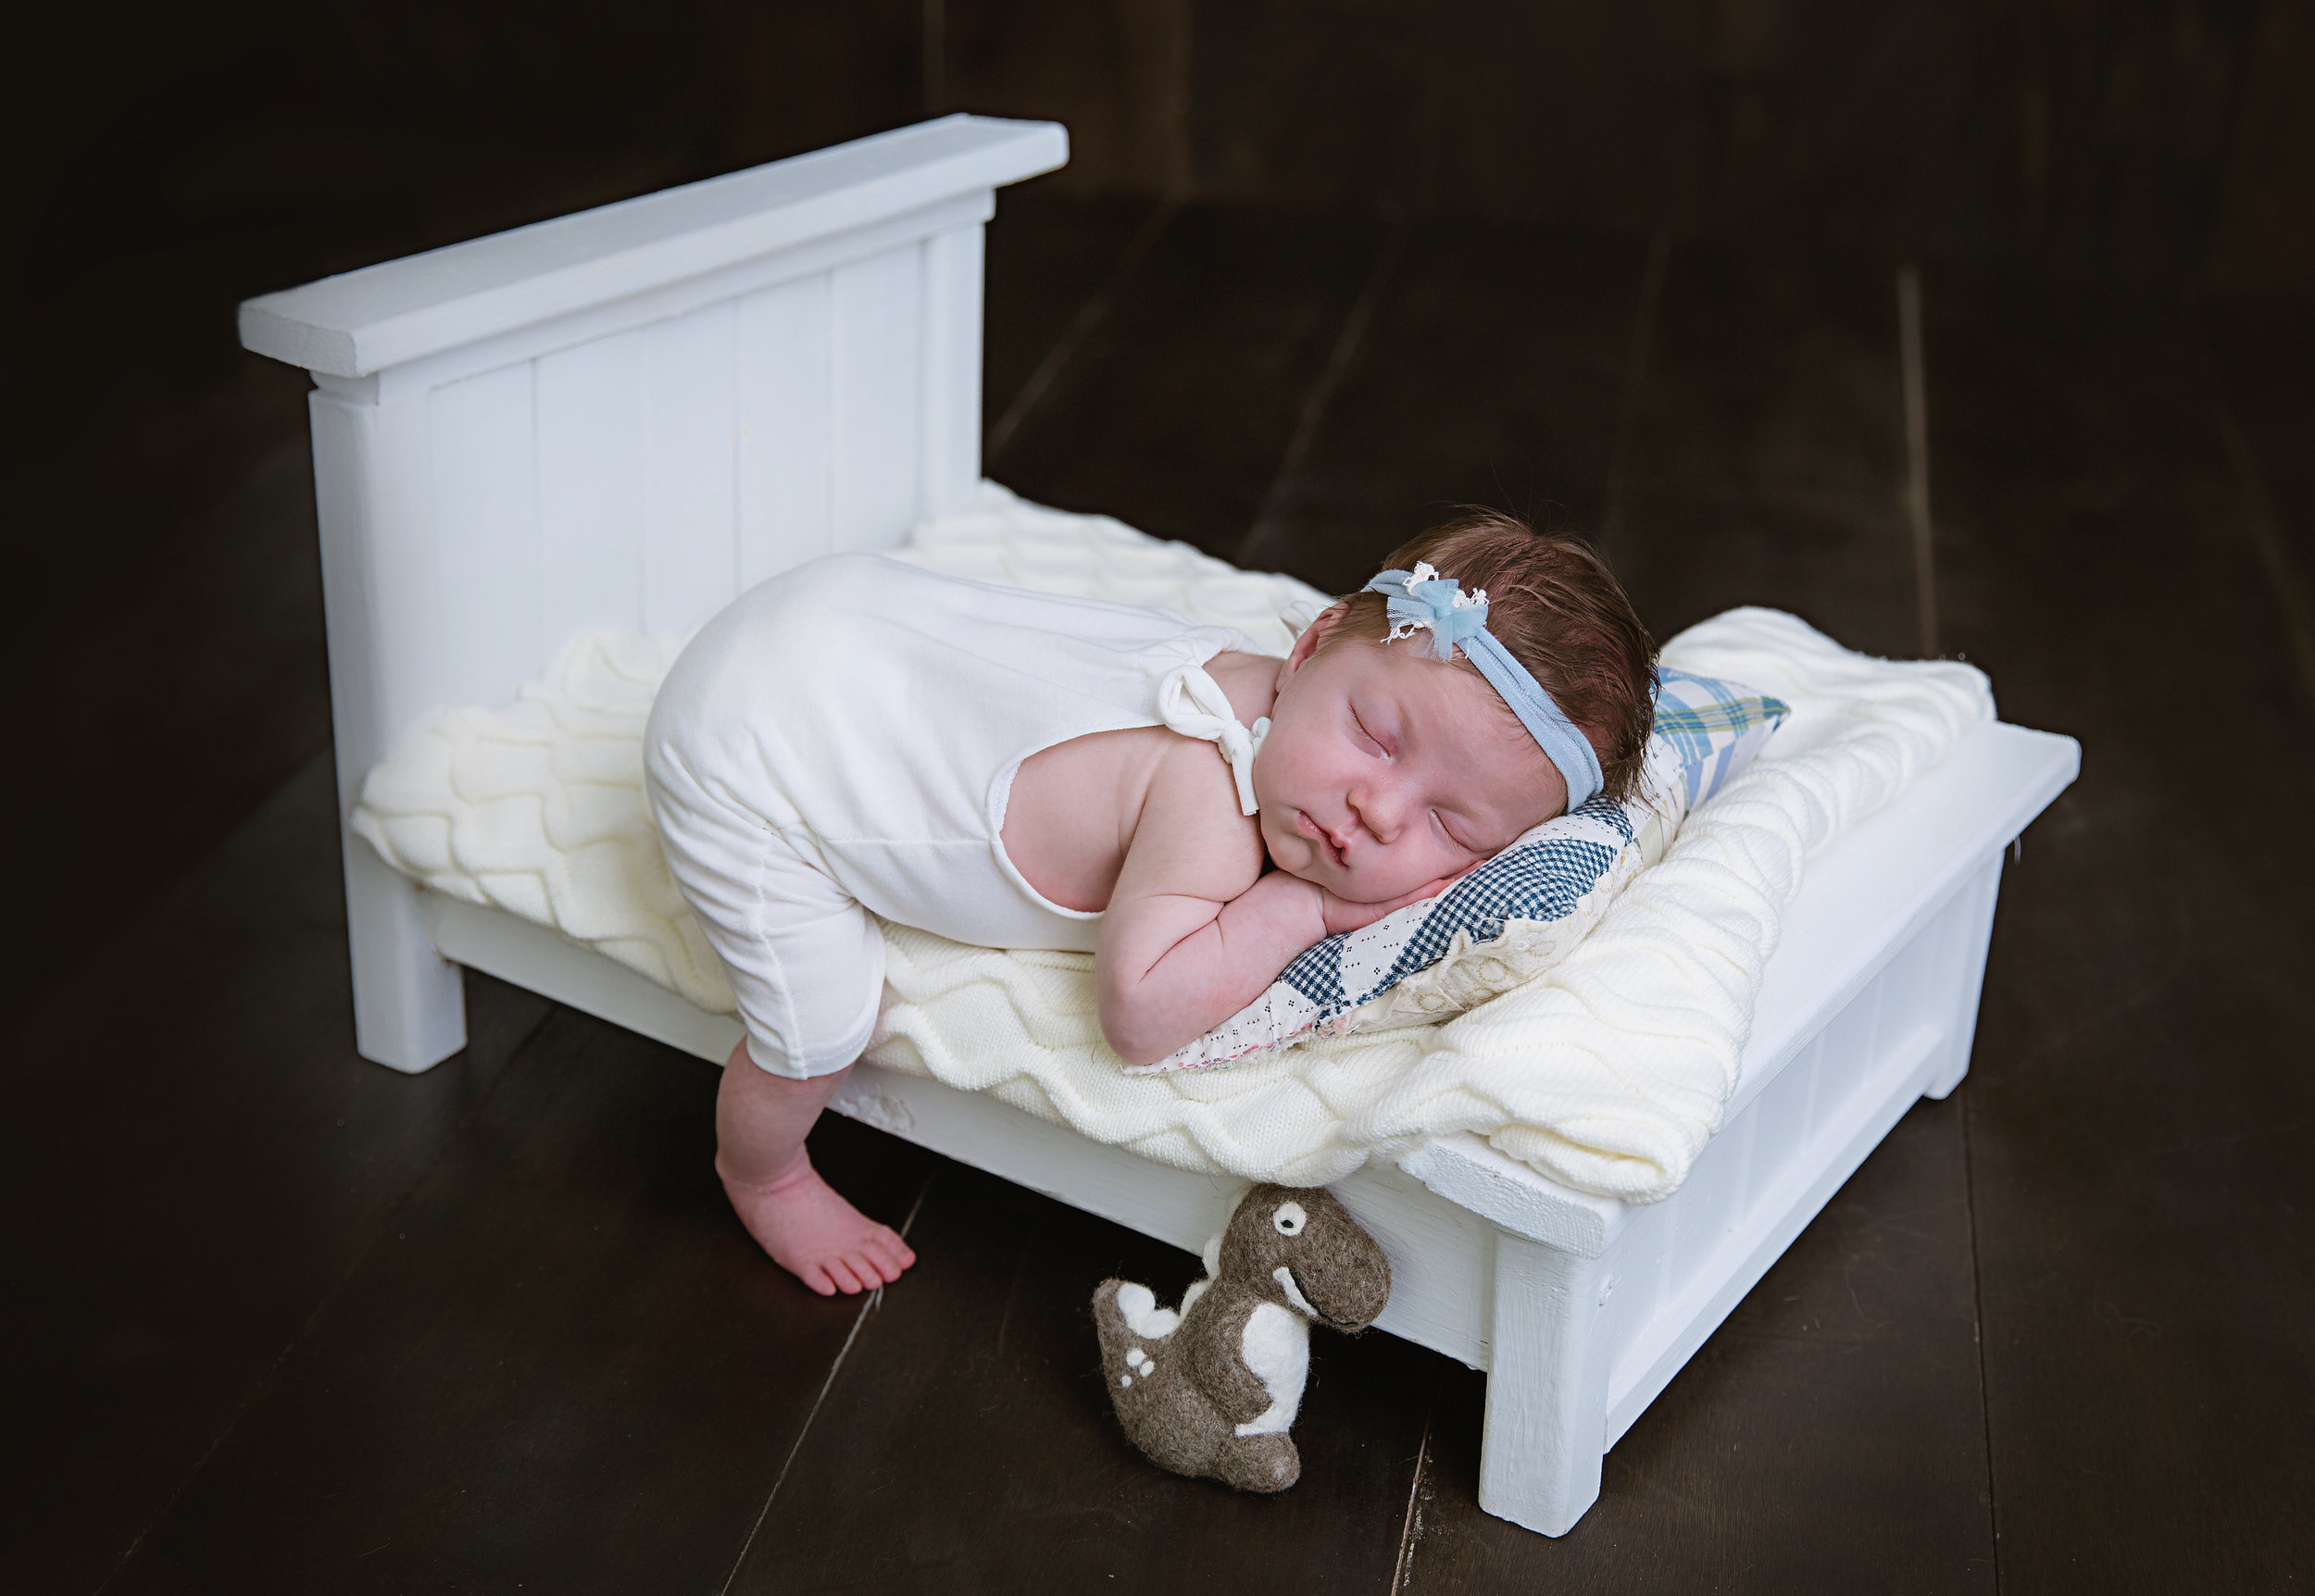 newborn-baby-girl-lying-on-soft-dream-bed-black-background-photography-blue-headband-shoot-burlington-new-jersey